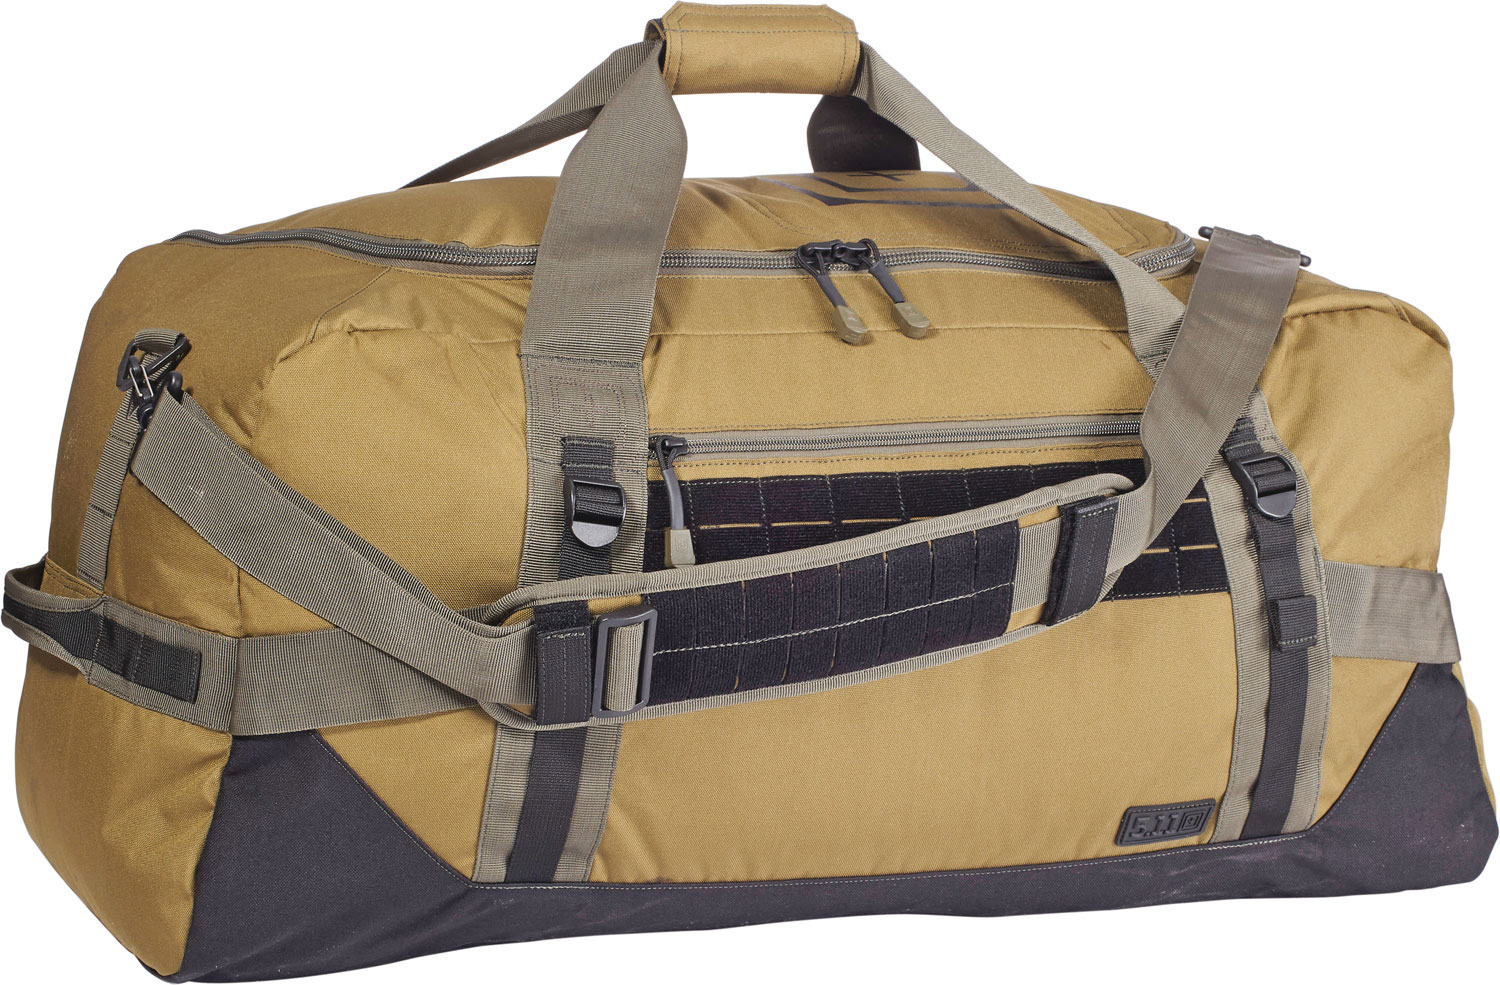 5.11 Tactical NBT Mike Duffle Bag Style 56183 Removable Padded Shoulder Straps Weather Resistant